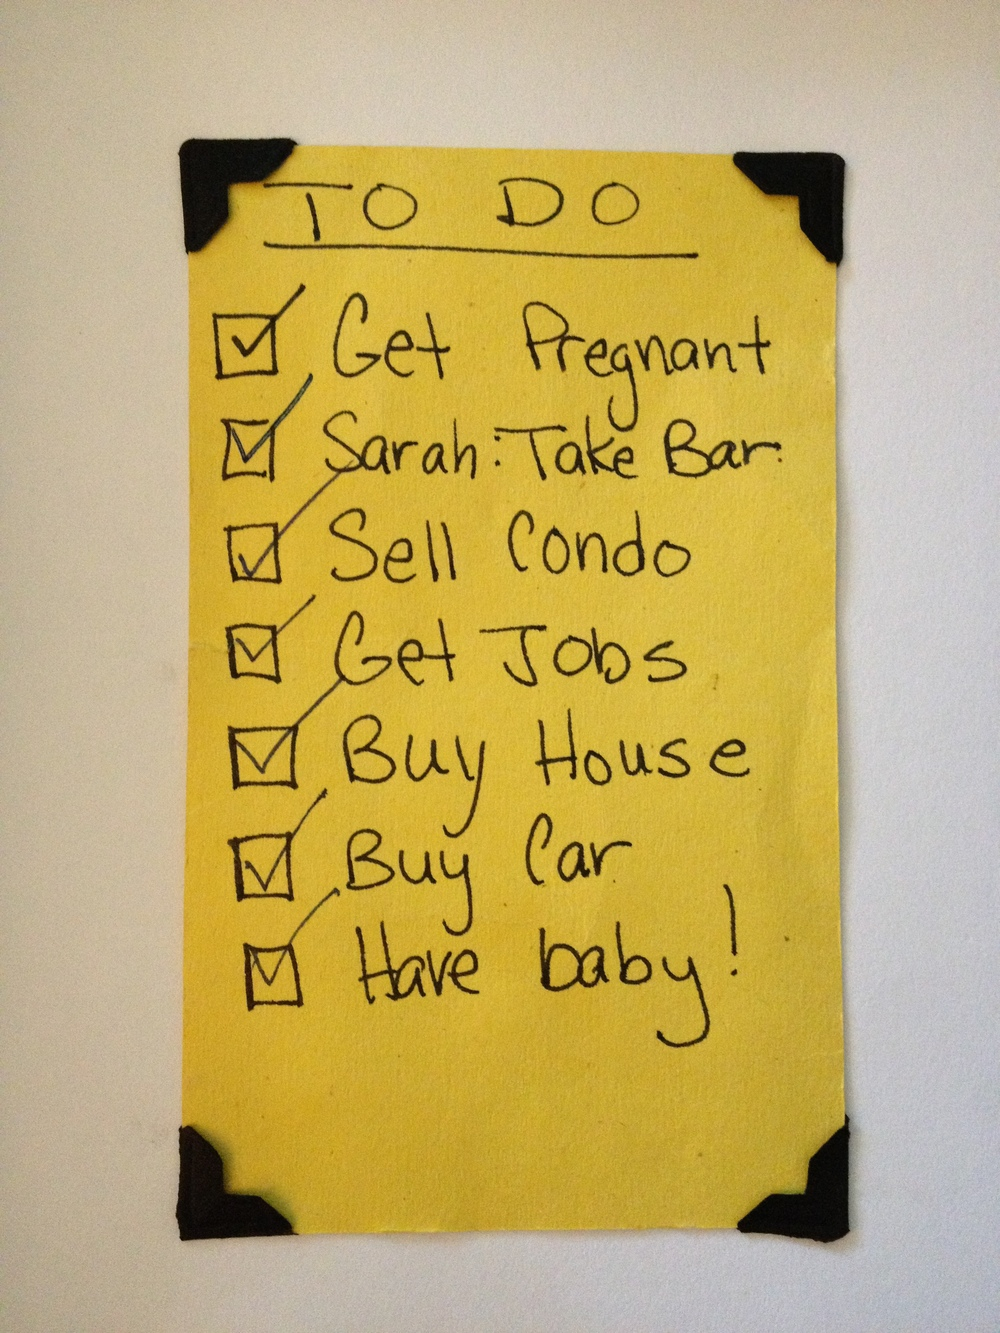 I made this simple to do list to further persuade my husband that this wasn't a major life change but a few minor tweaks.